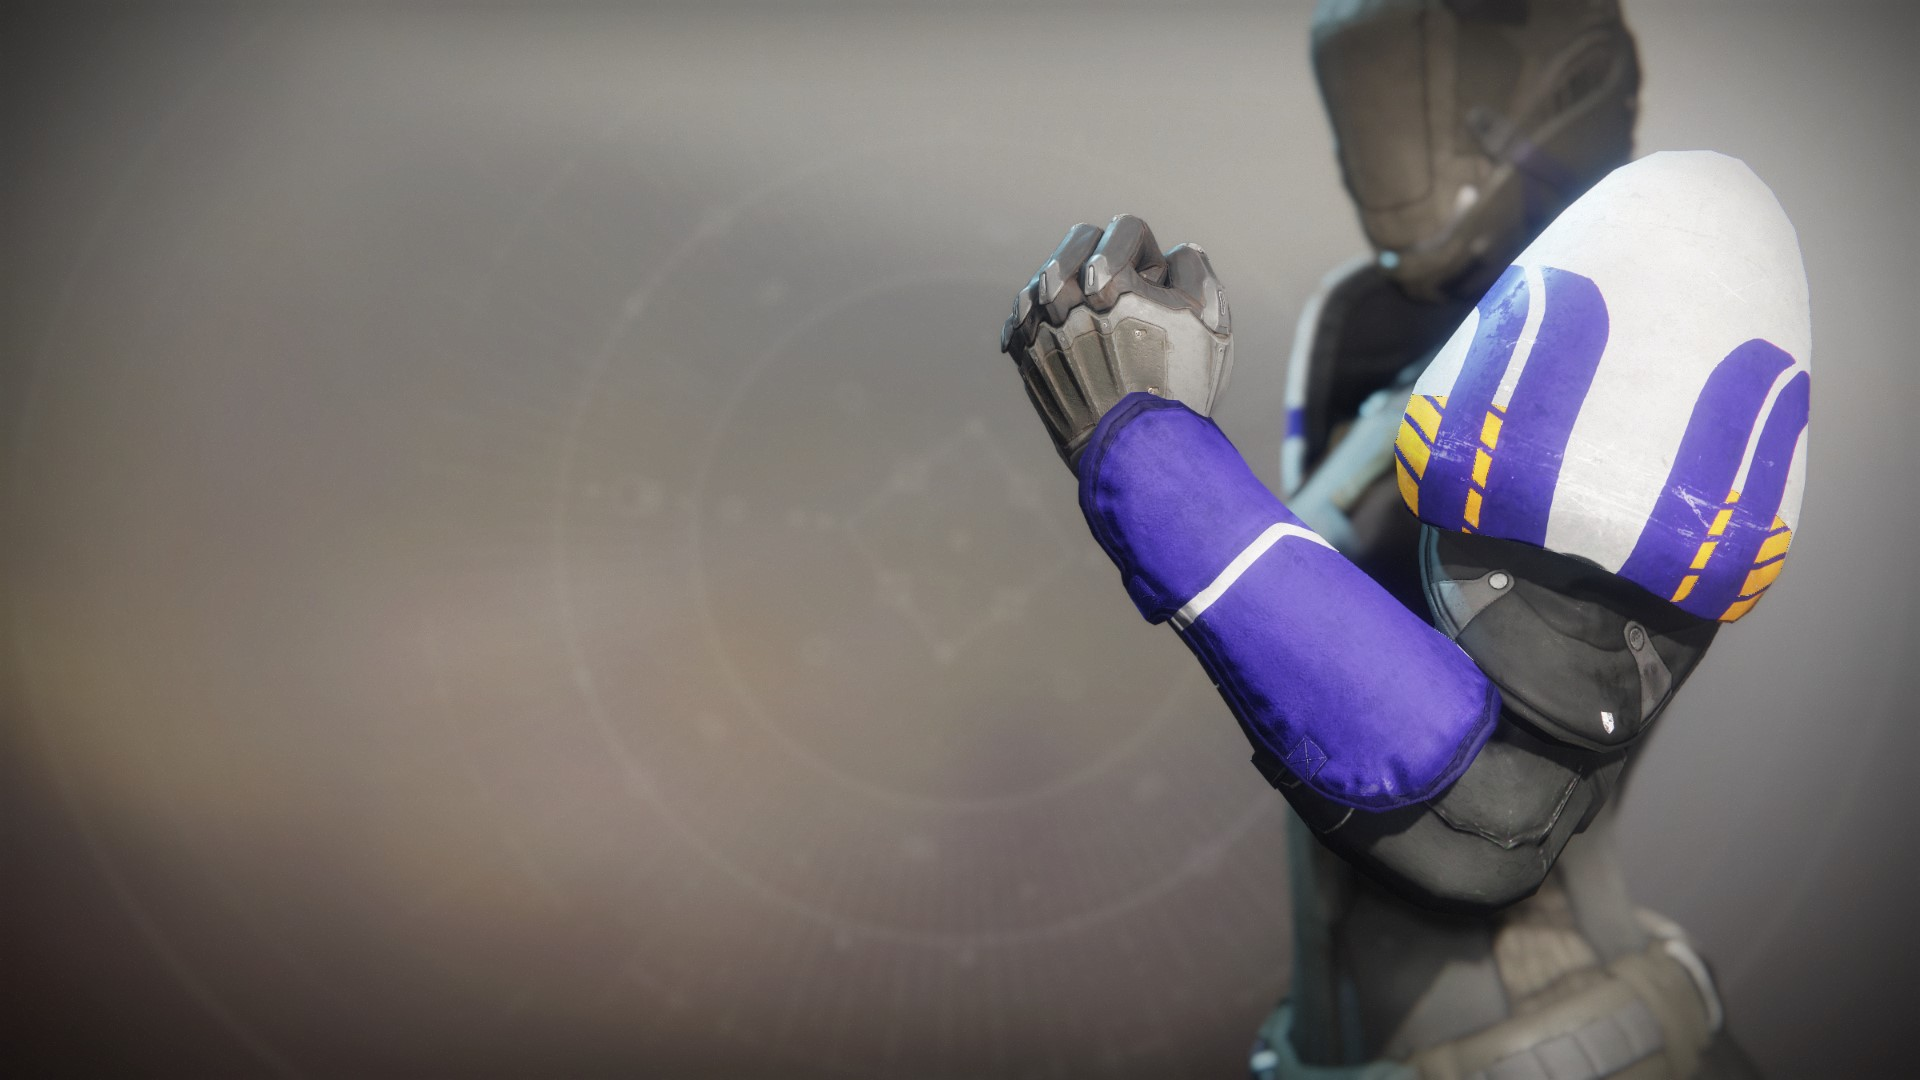 An in-game render of the Superior's Vision Gauntlets.